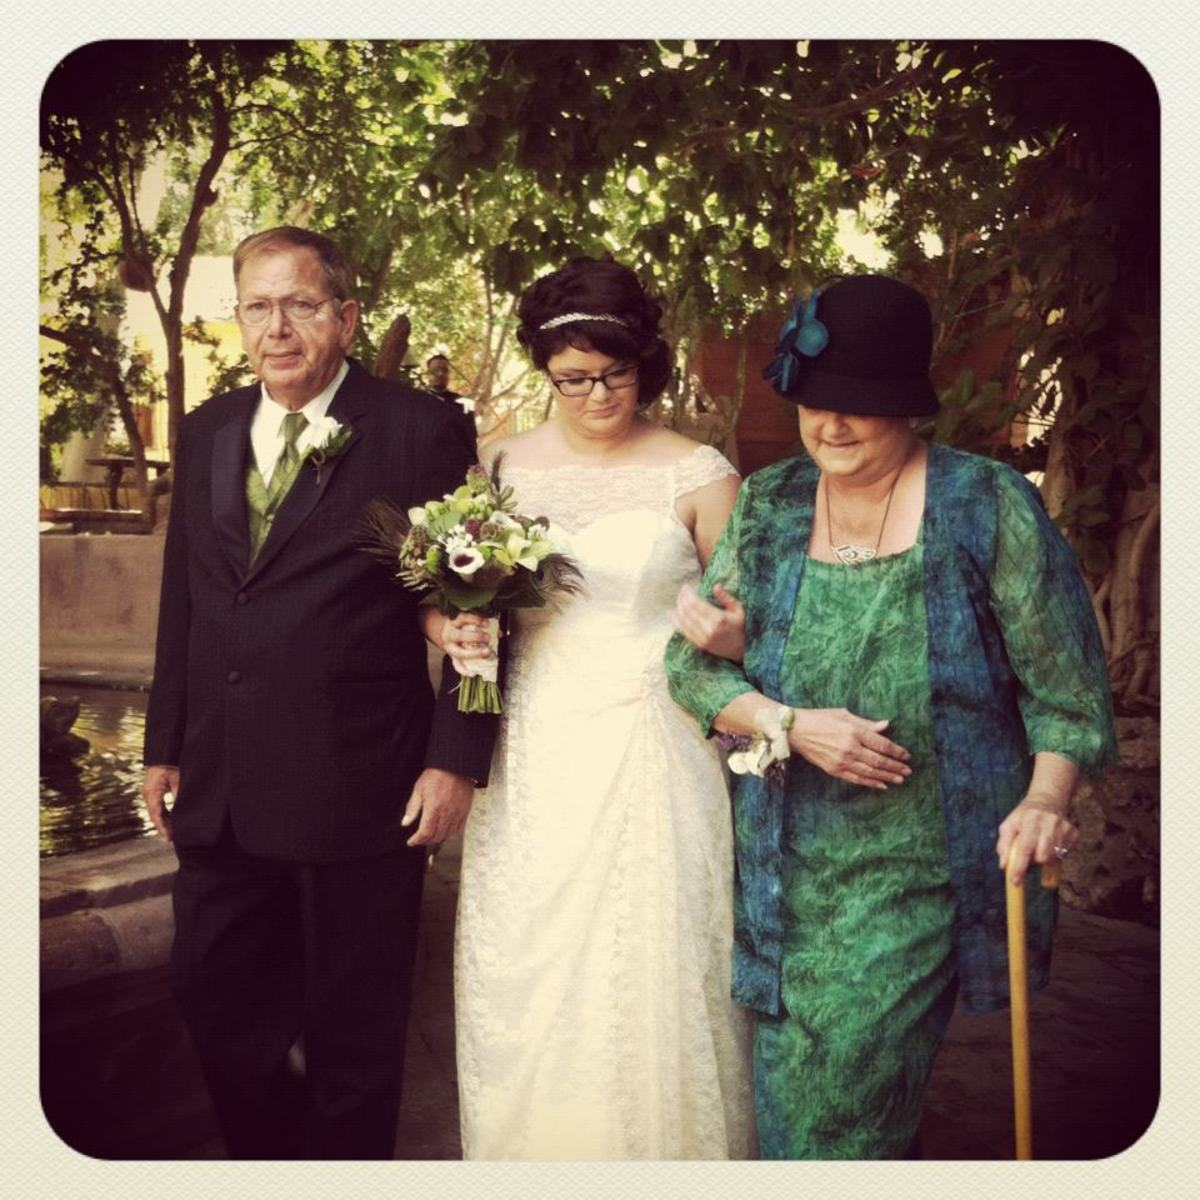 My father and mother walking me down the aisle.